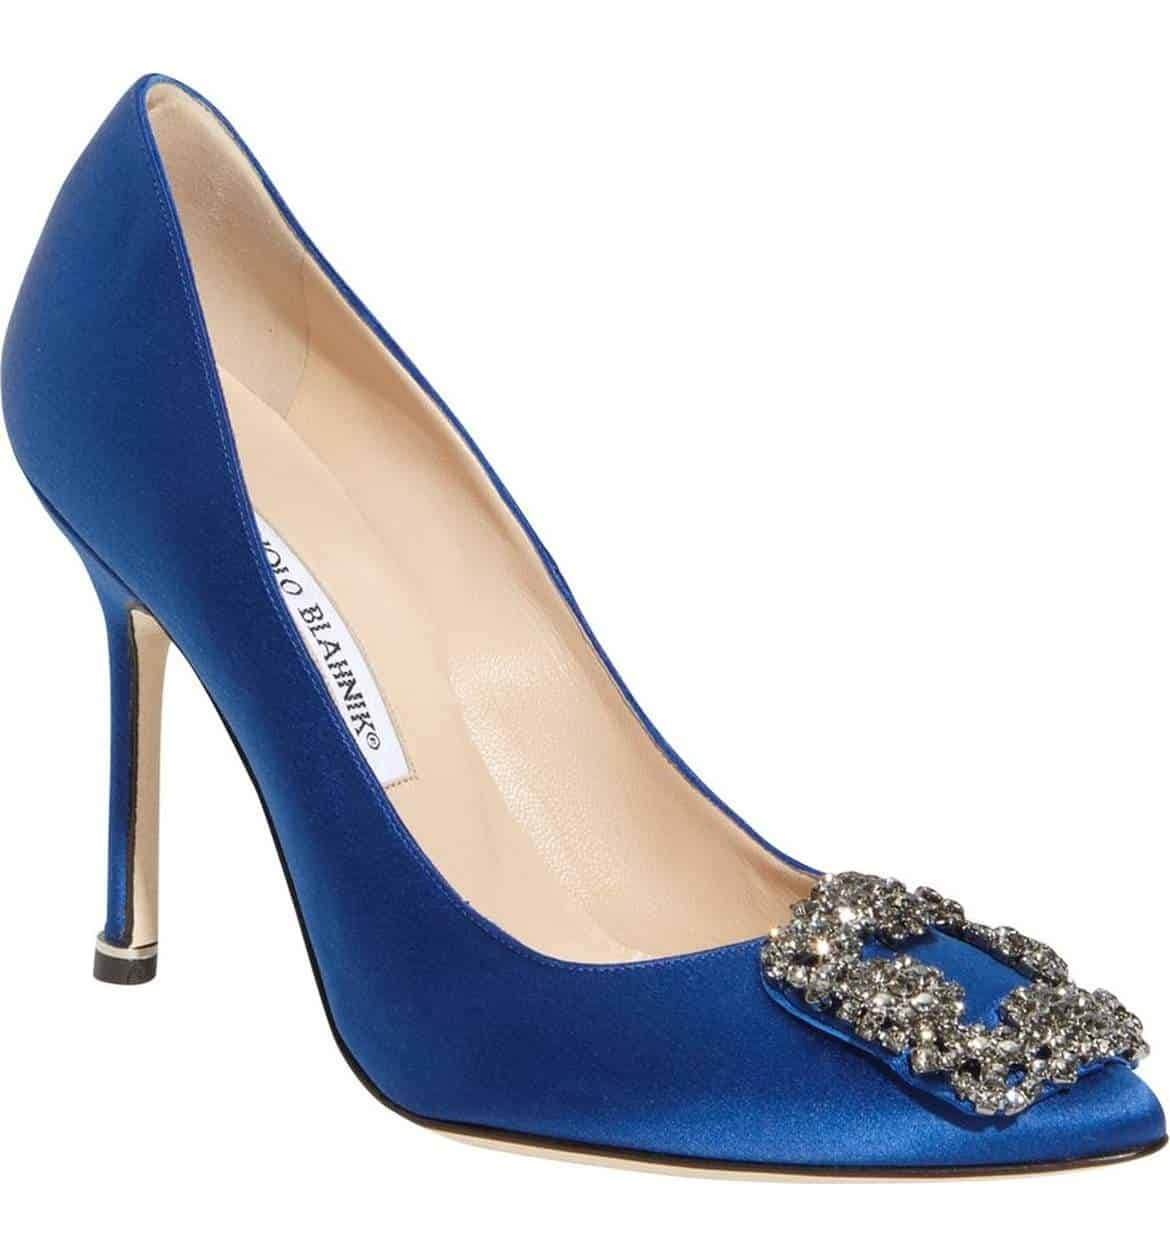 Manolo blahnik wedding shoes stylin on your big day for Shoe designer manolo blahnik